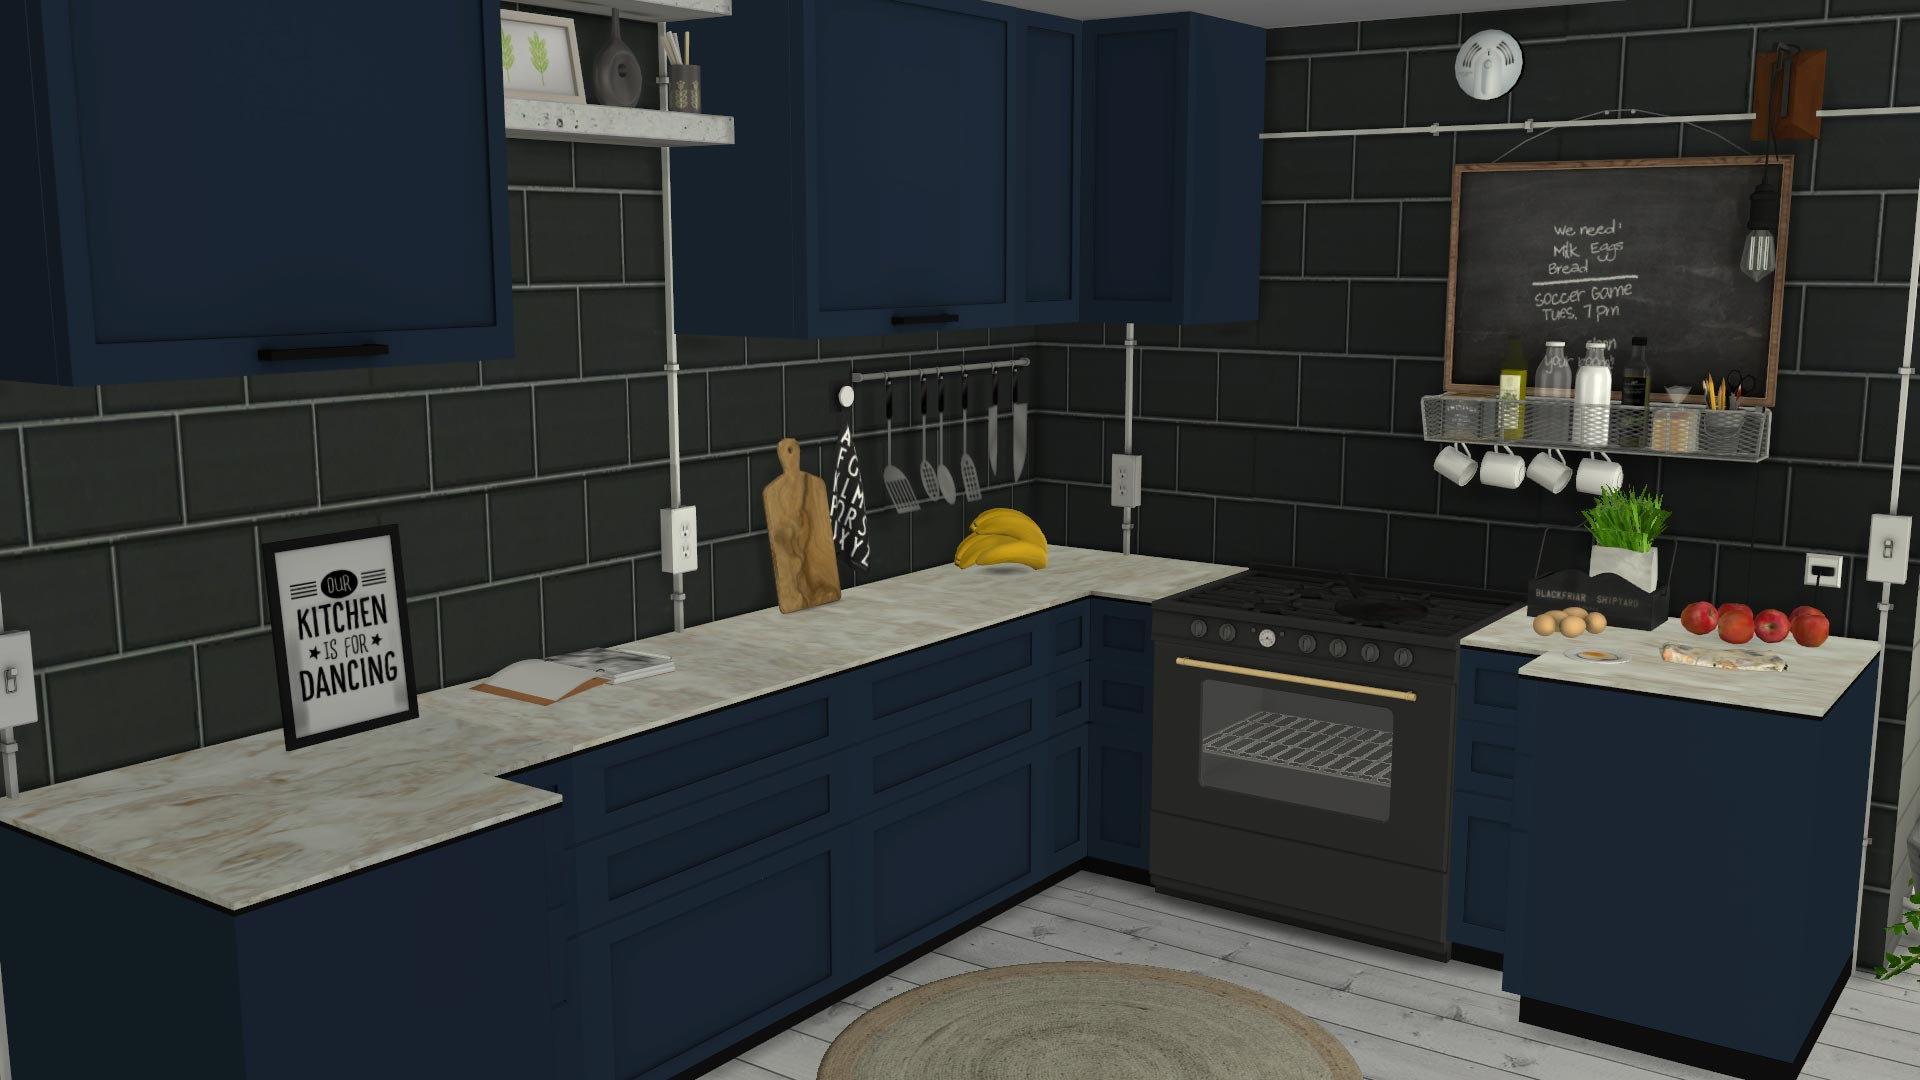 Madison Kitchen, high quality sims 4 cc, sunkissedlilacs, free sims 4 furniture, sims 4 custom content,